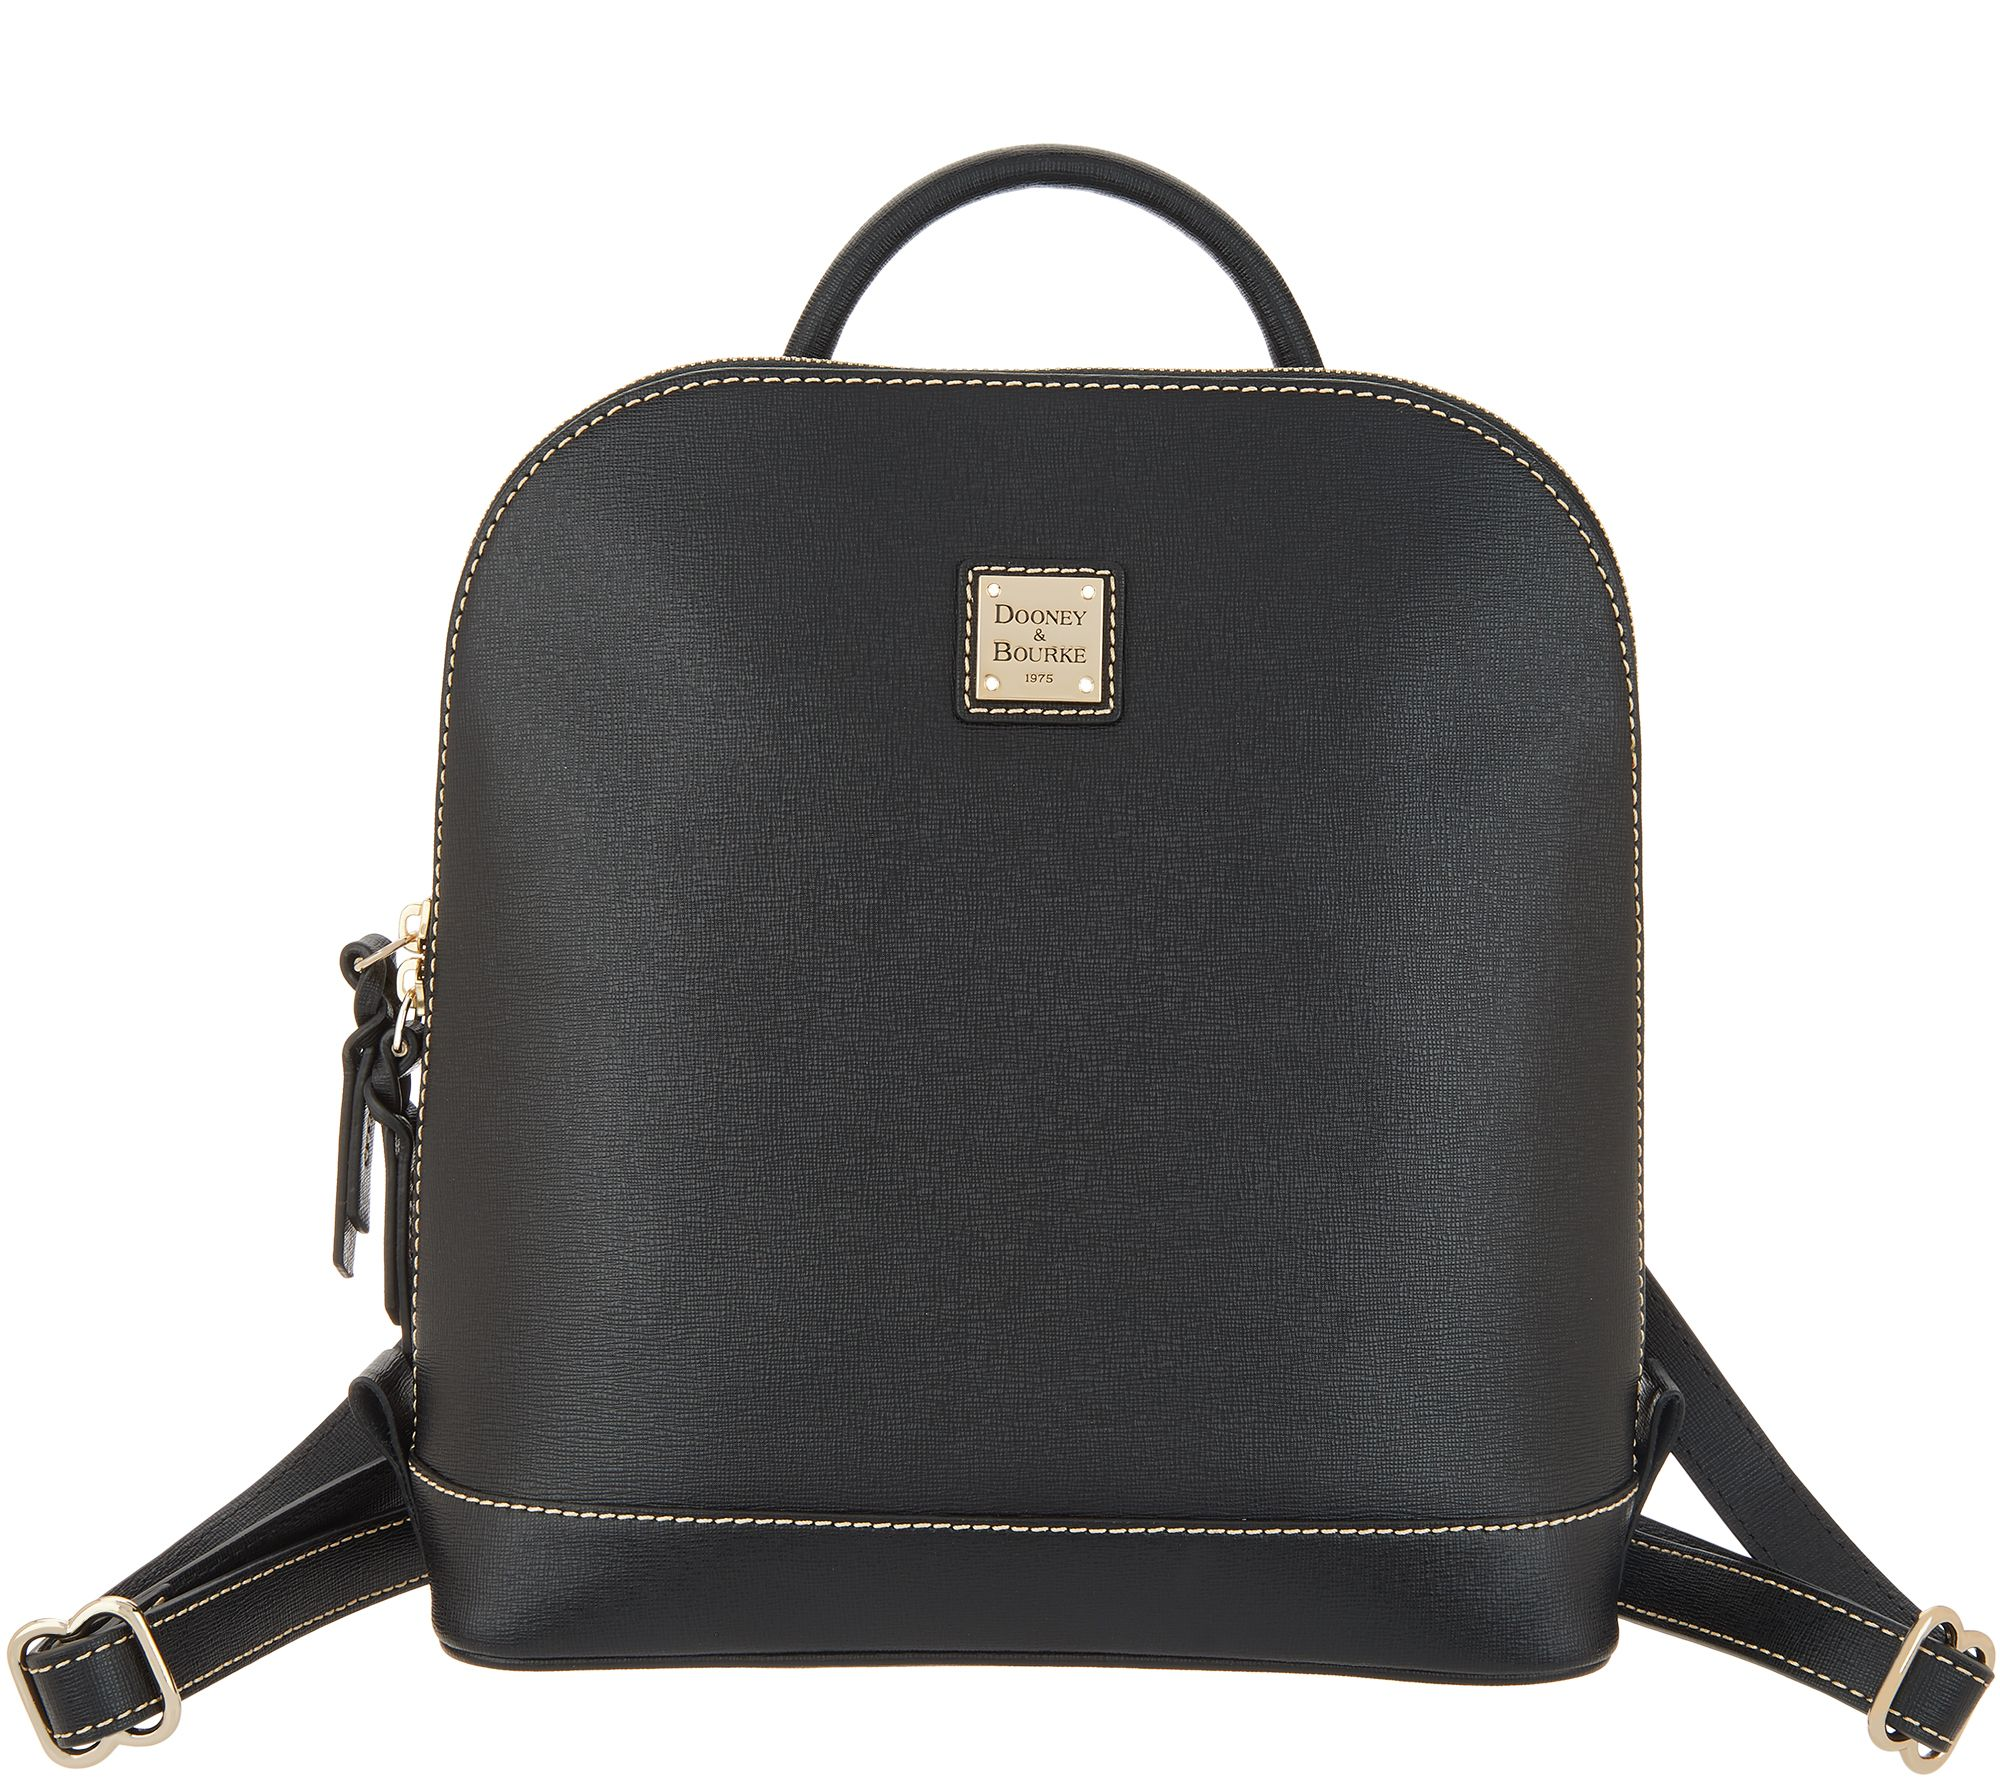 Dooney Bourke Saffiano Leather Pod Backpack Qvc